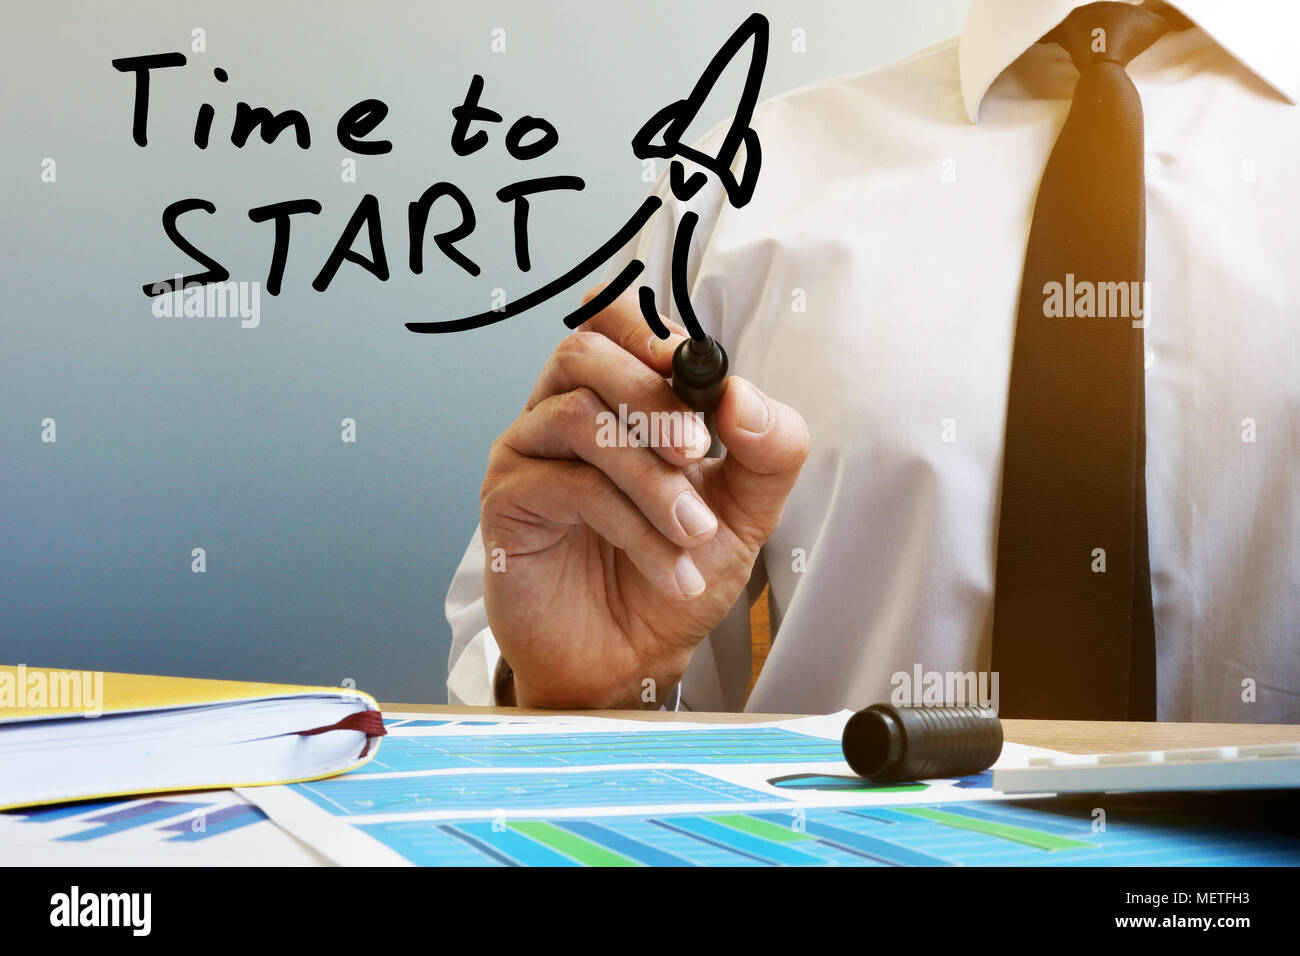 Time to start. Businessman at the table. New business or Start up concept. - Stock Image